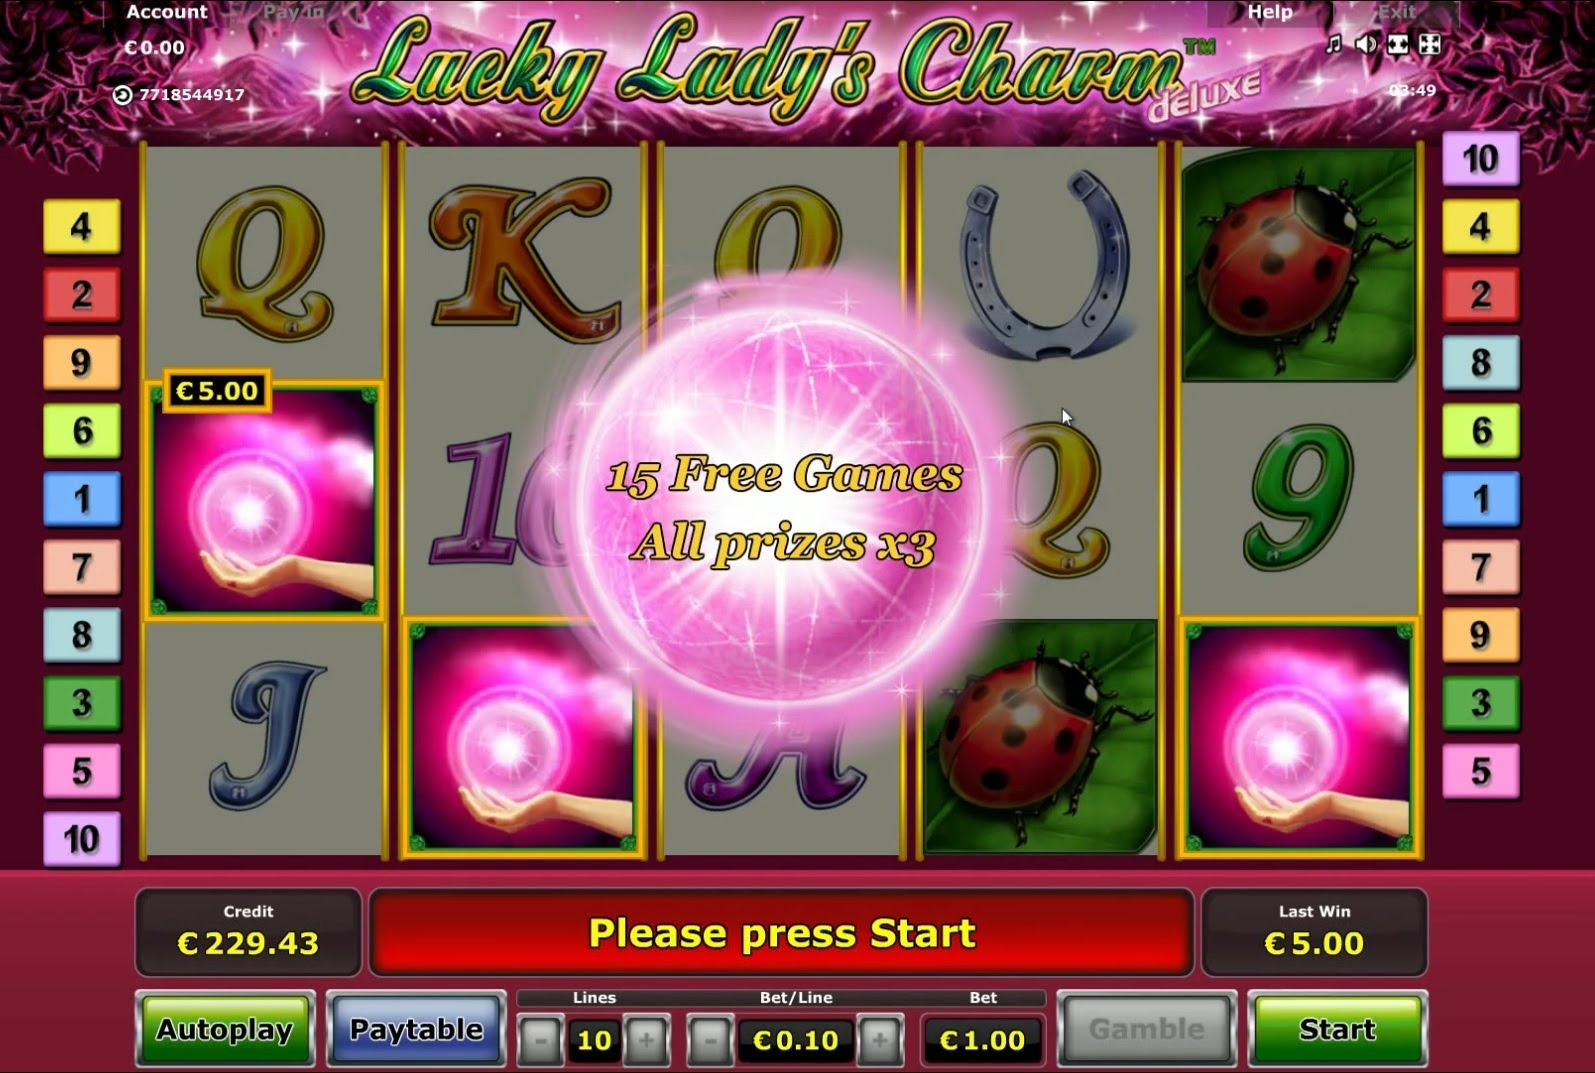 slot machine free online lucky lady charm deluxe